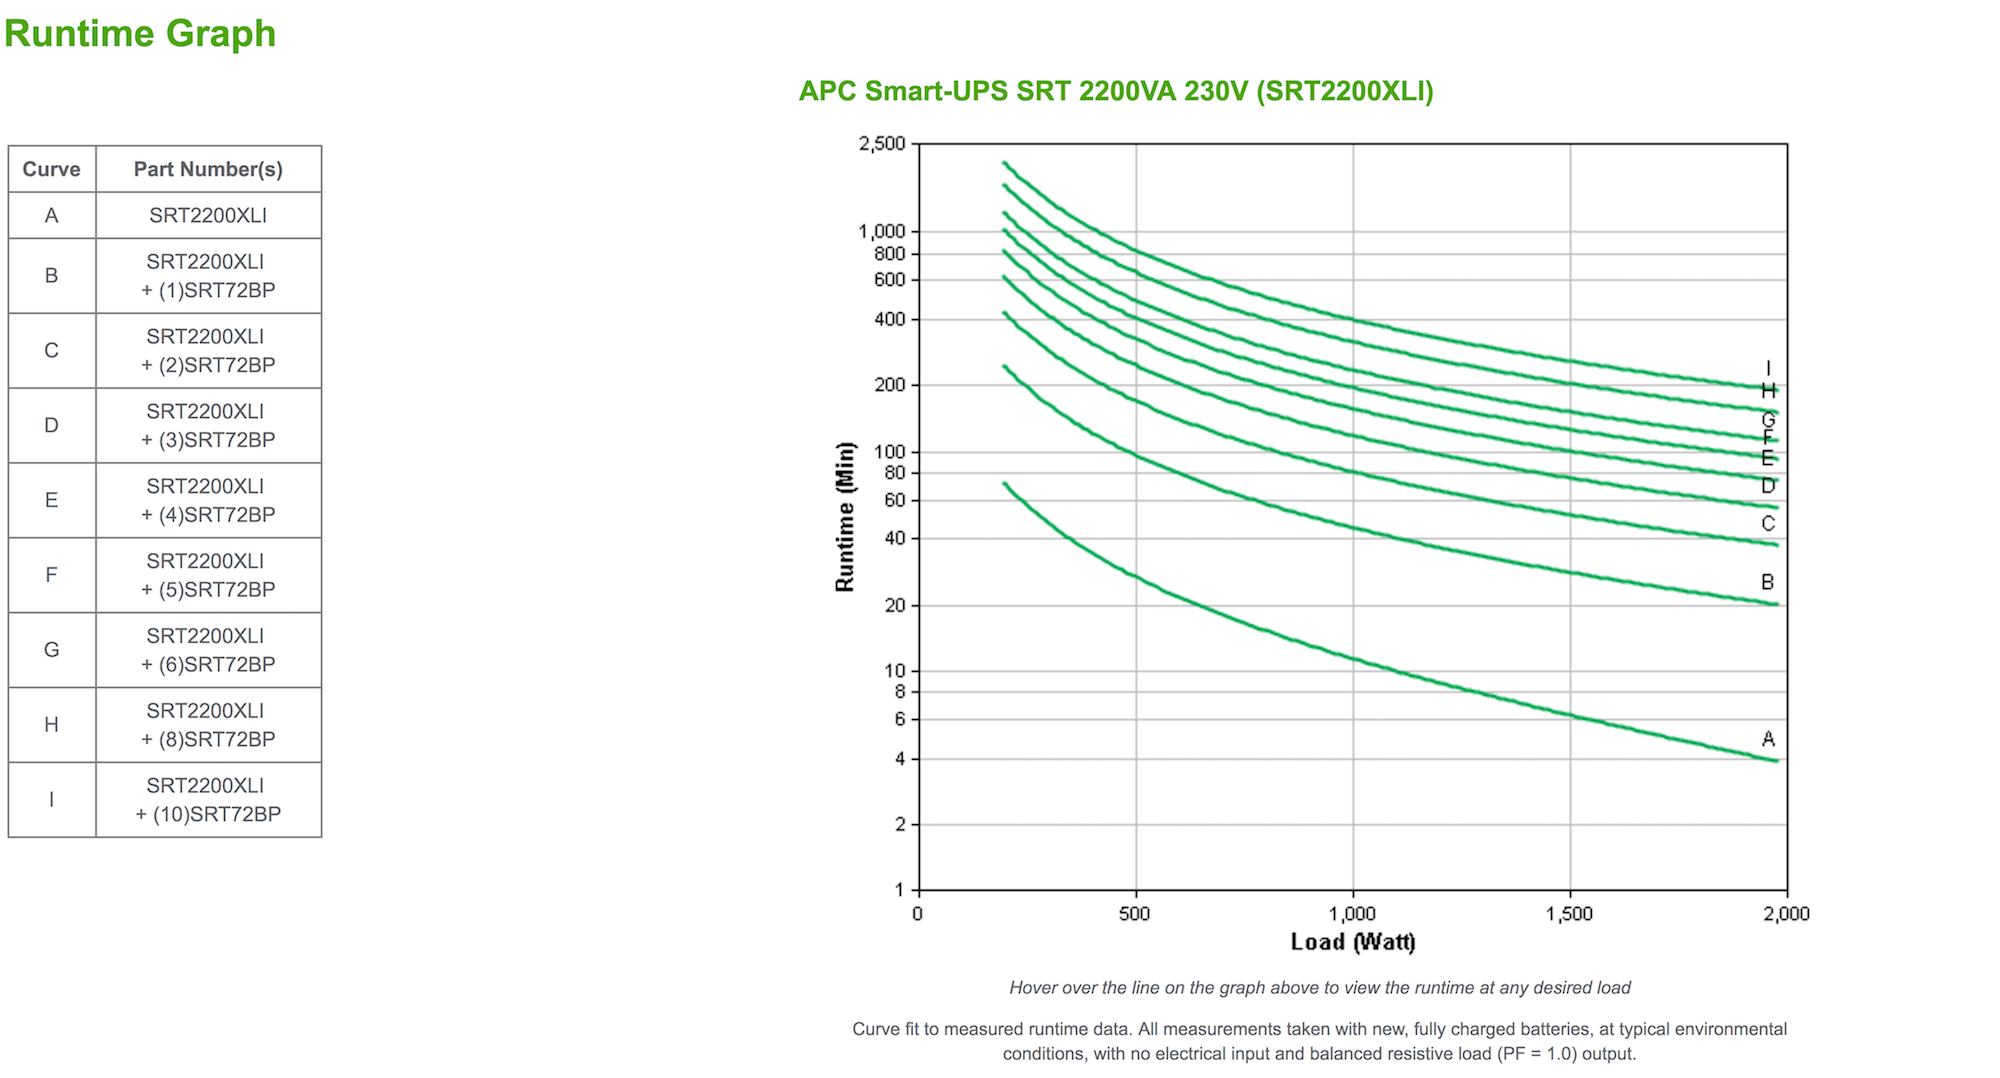 NEW - APC Smart-UPS RT 2200VA / 1980W Online 230V SRT2200XLI